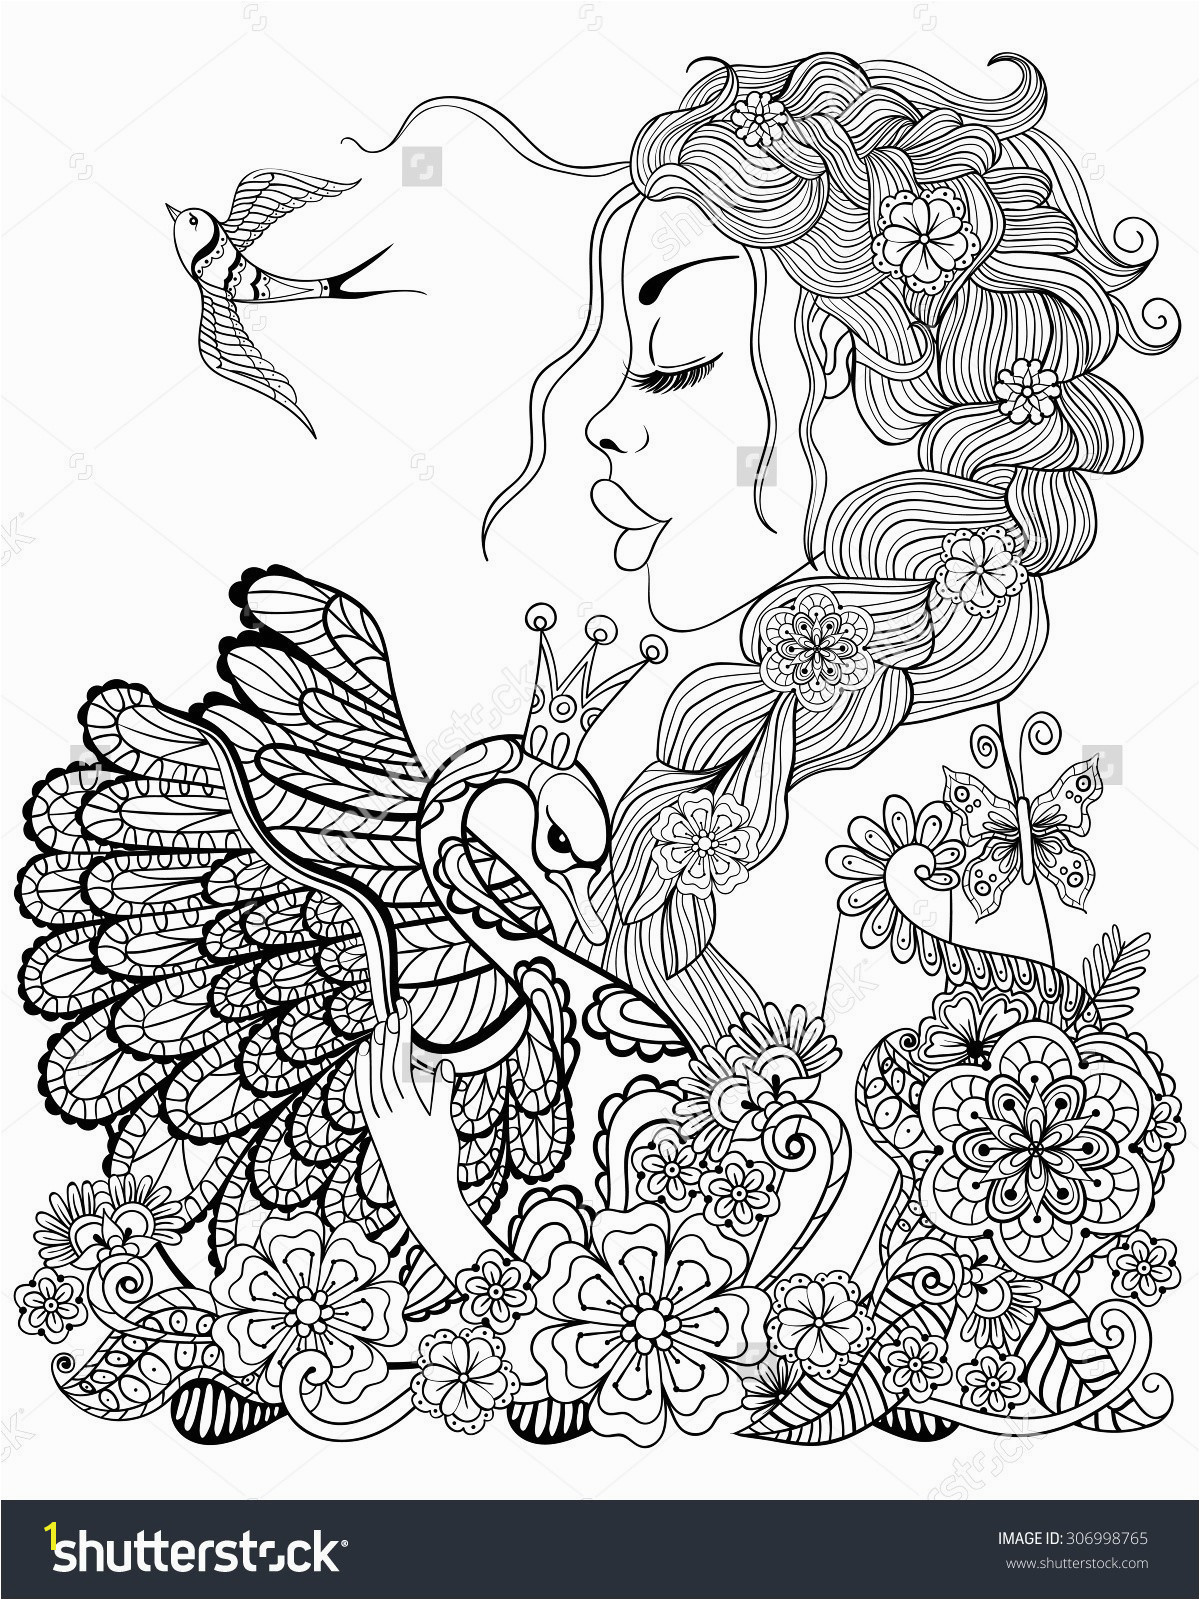 Cool March Coloring Pages Unique A Coloring Page Best Media Cache Ec0